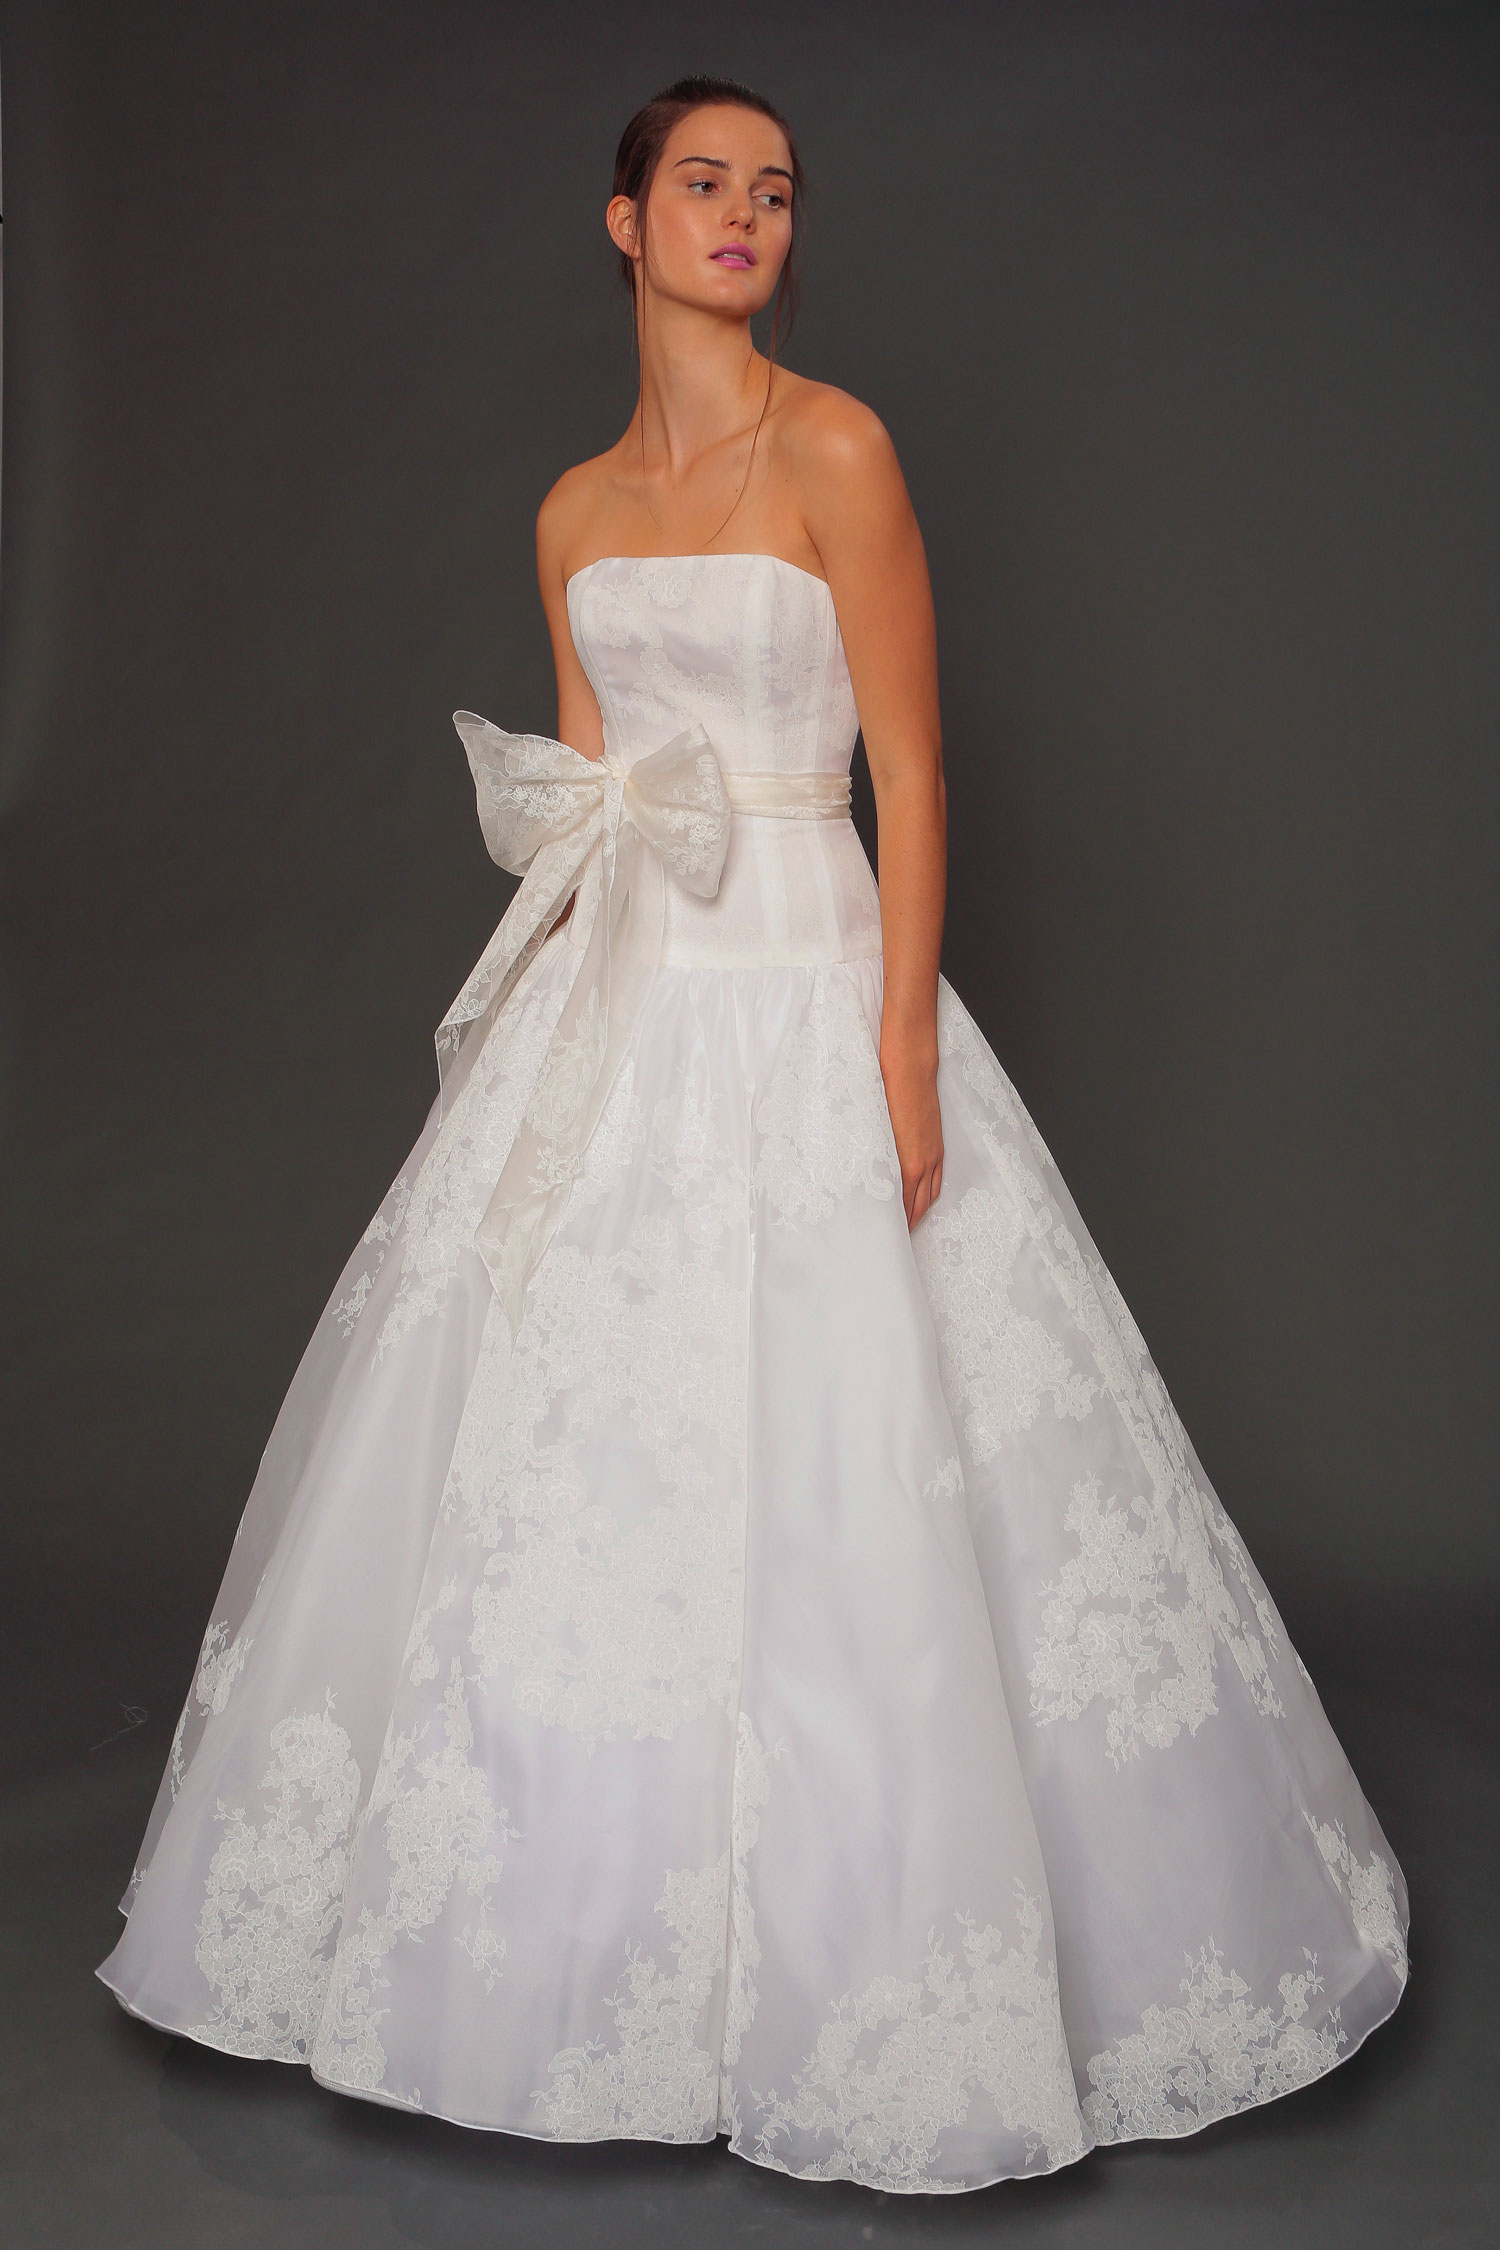 Isabelle Armstrong wedding dress with large bow detail in front